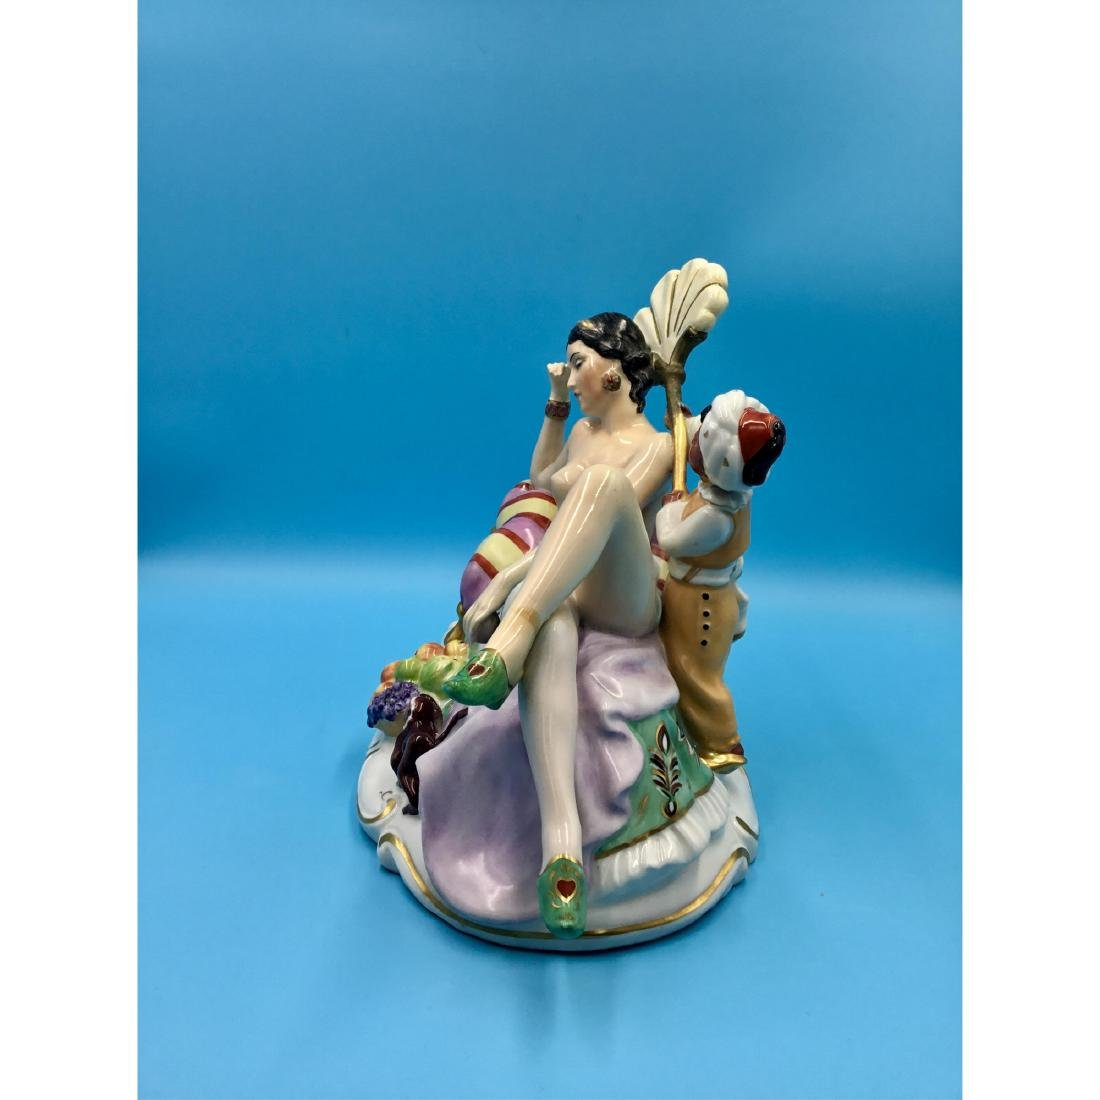 LARGE PORCELAIN GROUP FIGURINE NUDE WITH BLACKMOOR - 2